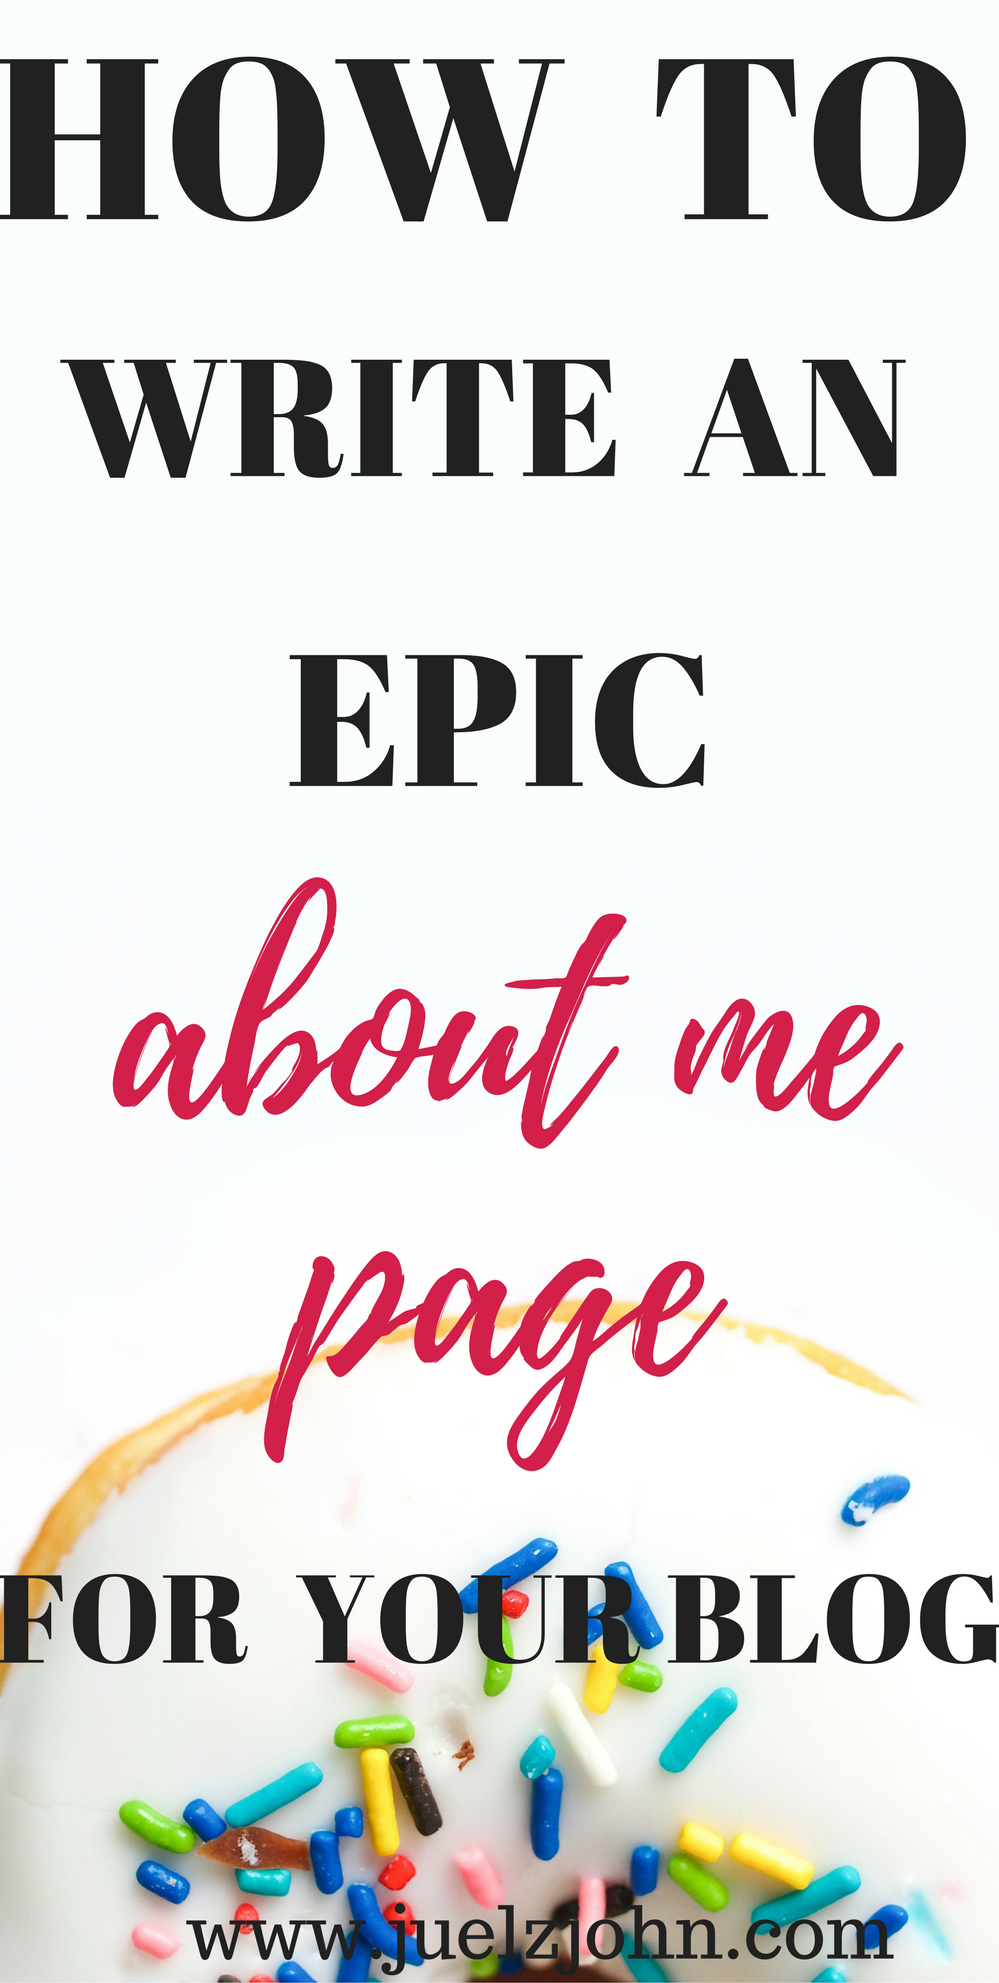 Howto write an epic aboutmepage